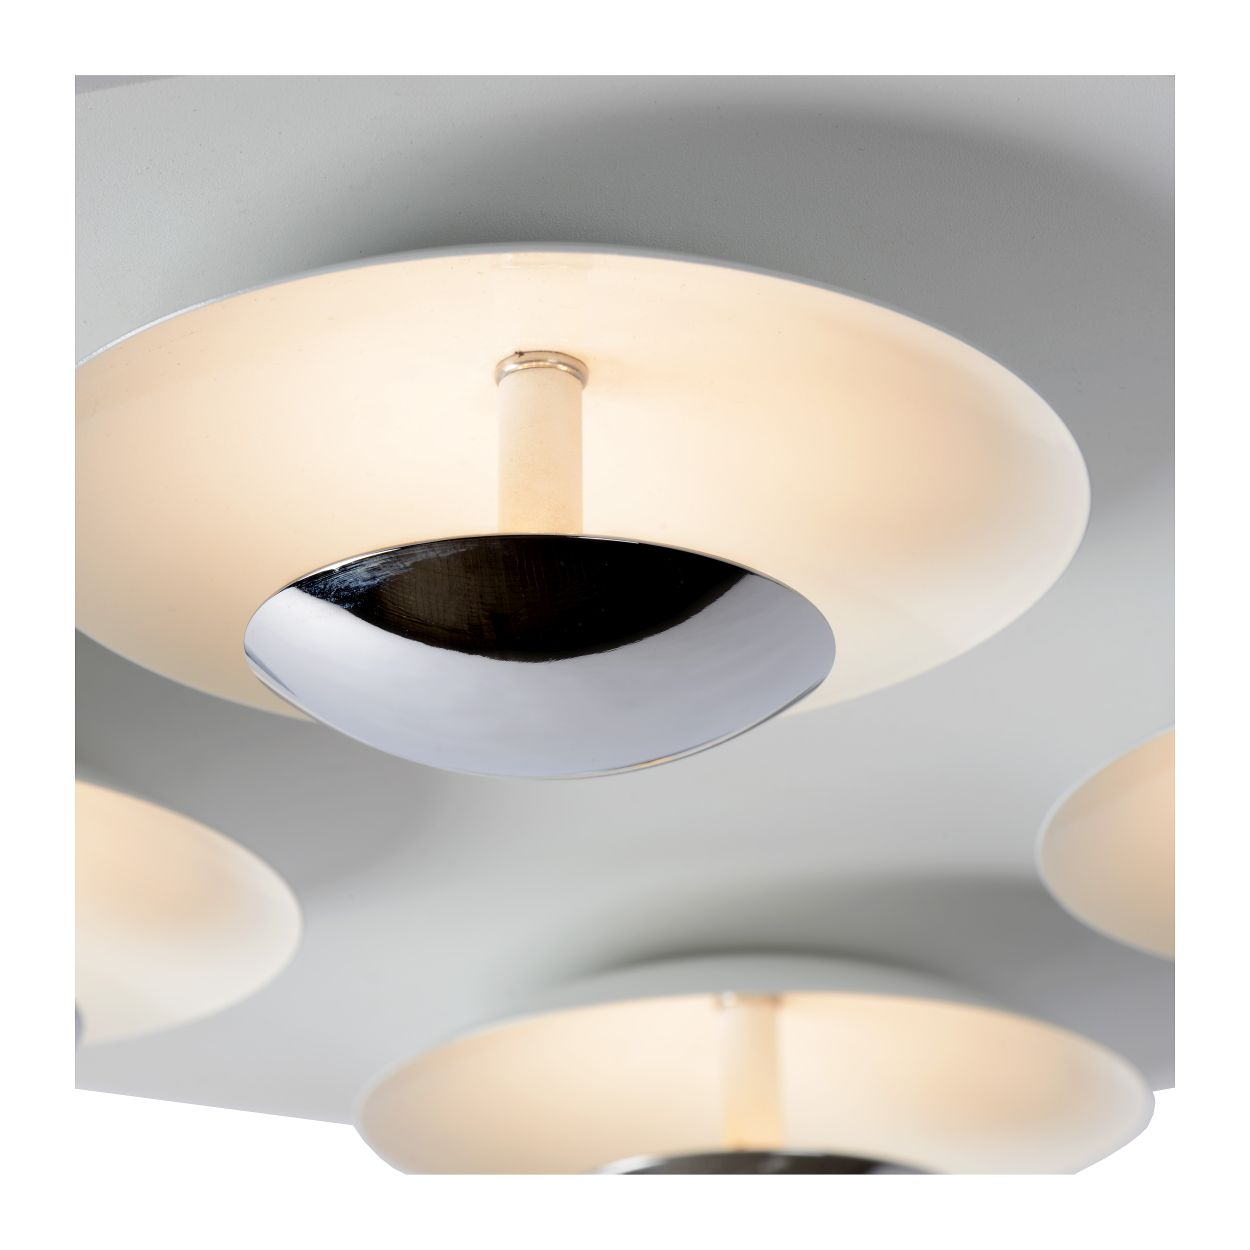 AMINE Ceiling Light LED 5x5W 35/35cm White